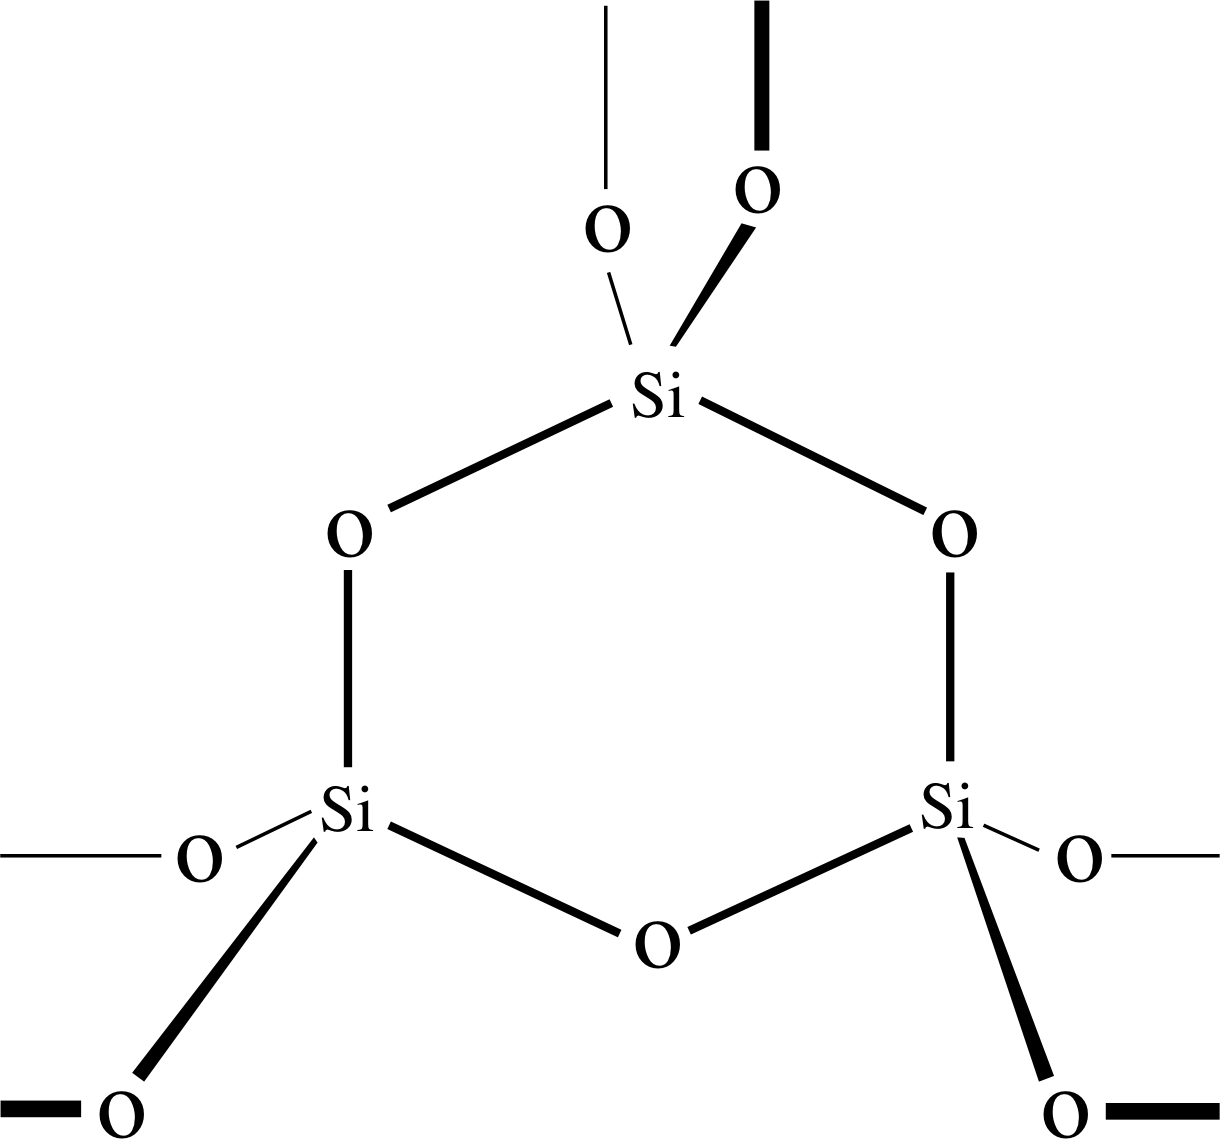 hight resolution of figure 6 simplified structure